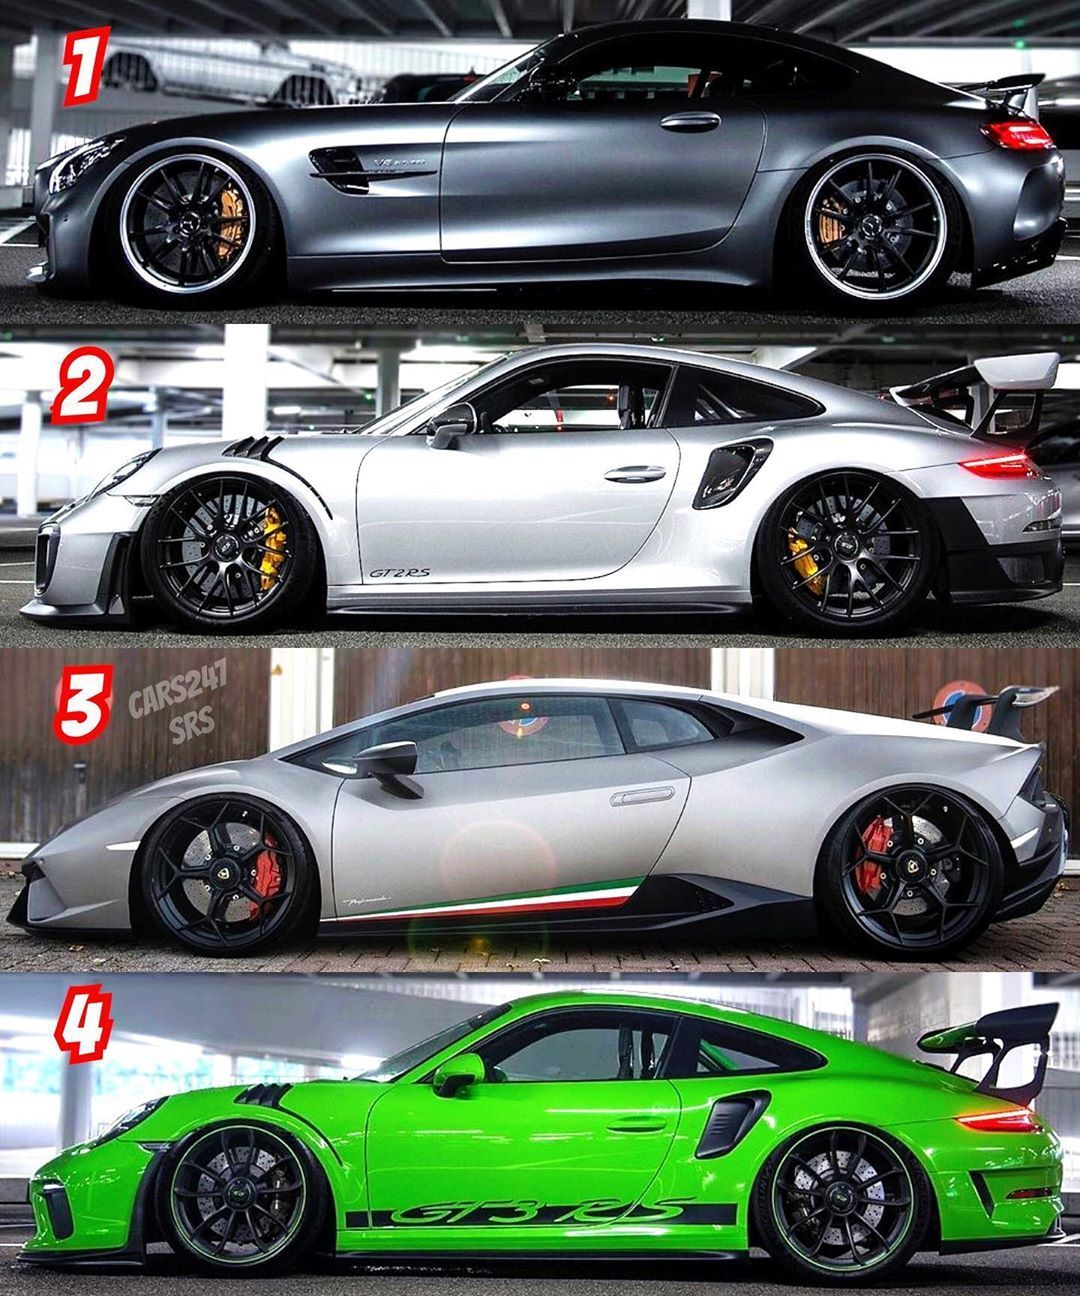 Carhoots The Hottest Most Social Viral Car Content On The Web In 2020 Bmw Concept Car Sport Cars Car Photos Hd